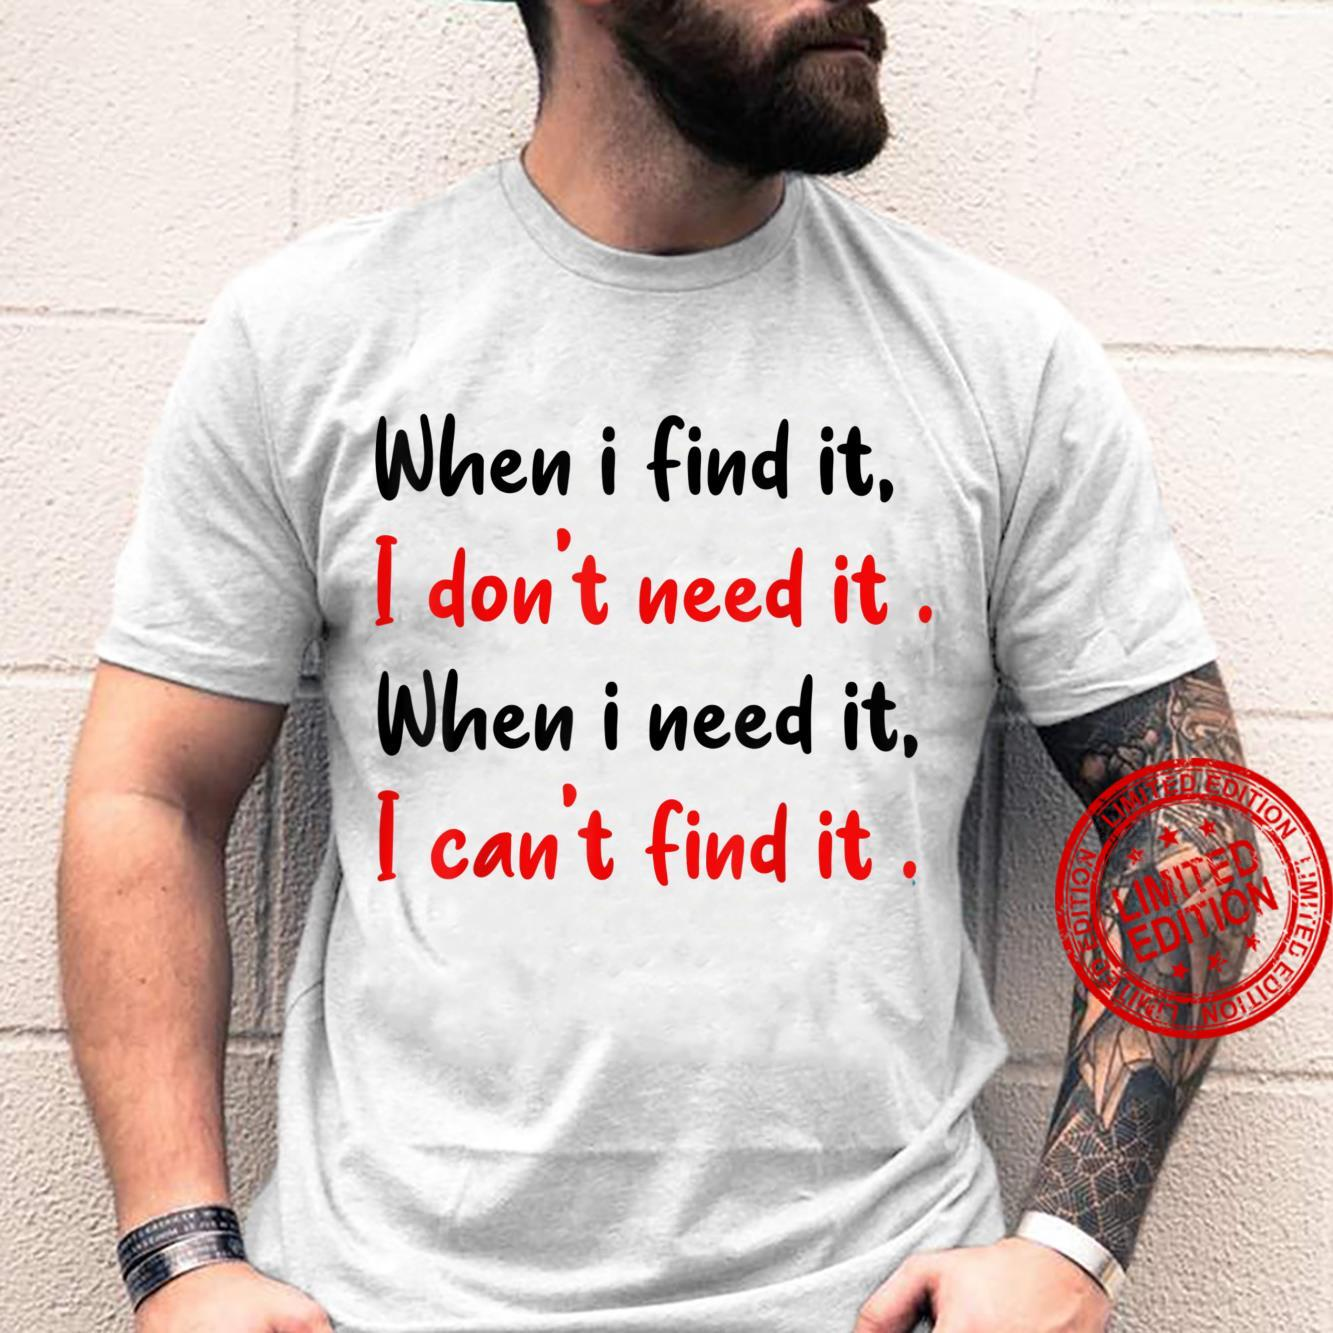 When I Find it, i don't need it, Shirt